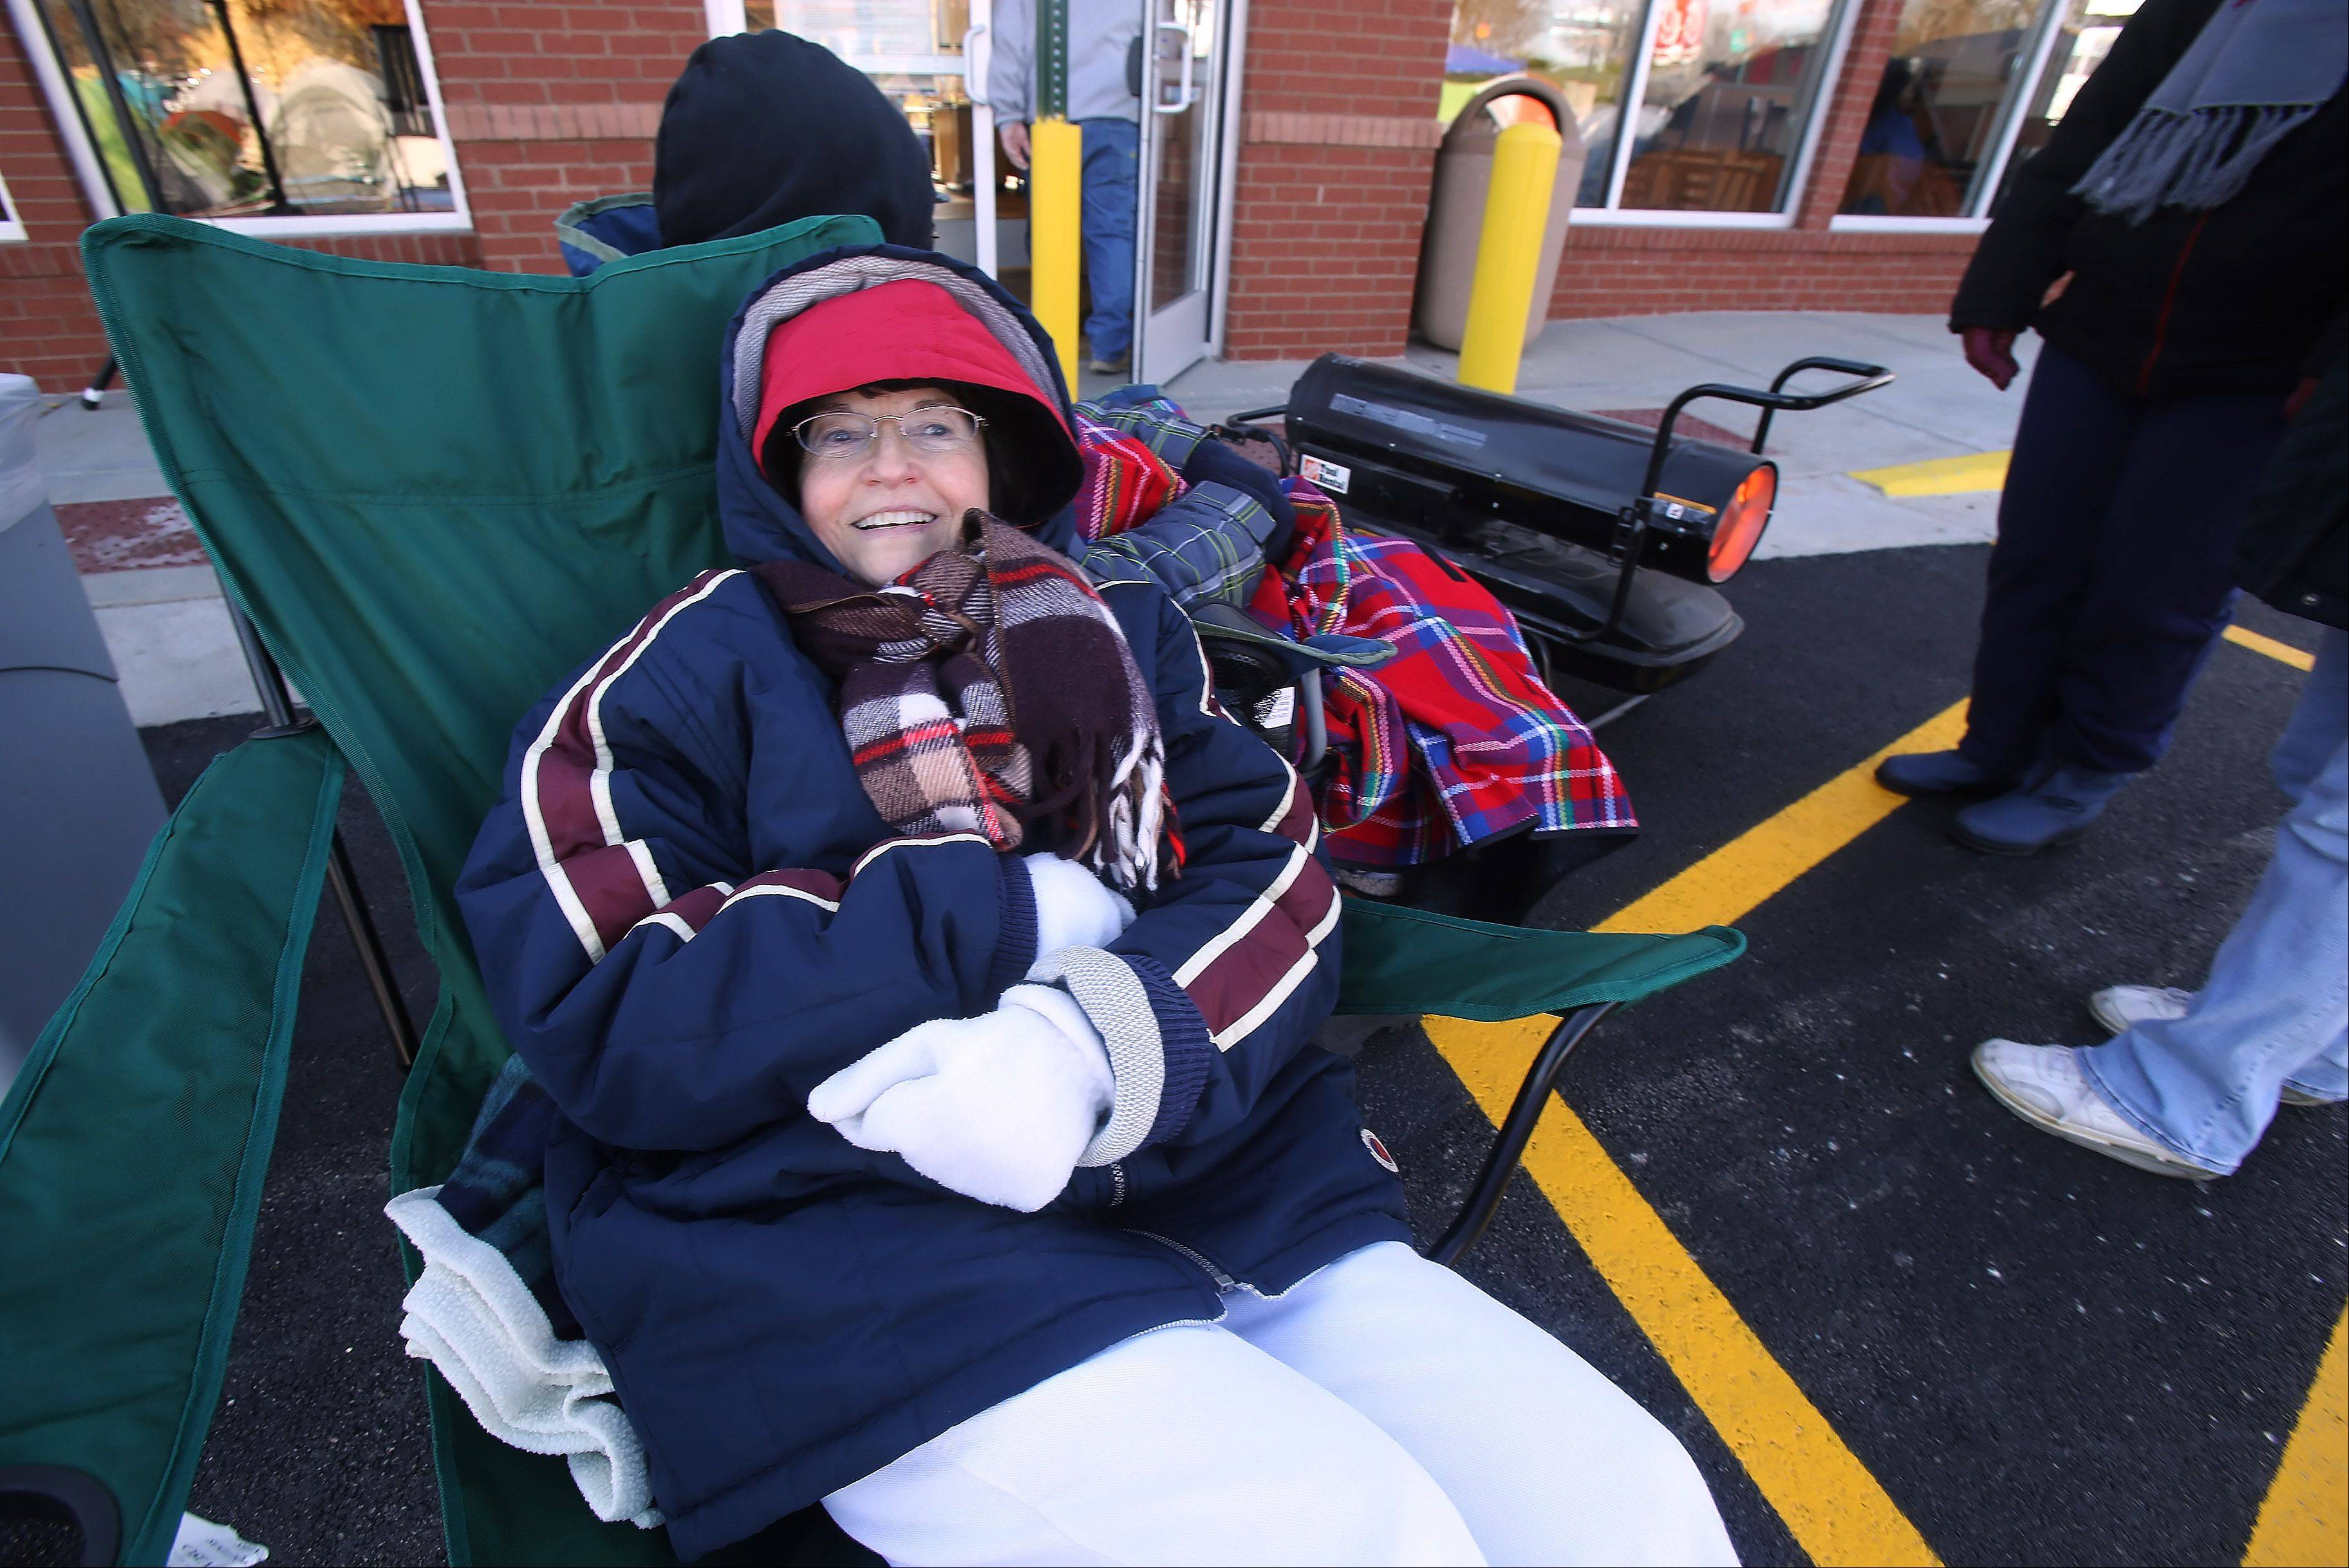 Bundled for the cold, Carol Durietz of Vernon Hills waits in line near a heater Wednesday outside the new Chick-fil-A location in Vernon Hills. The first 100 customers waiting in line when the restaurant opens Thursday will receive a free meal a week for the next year.